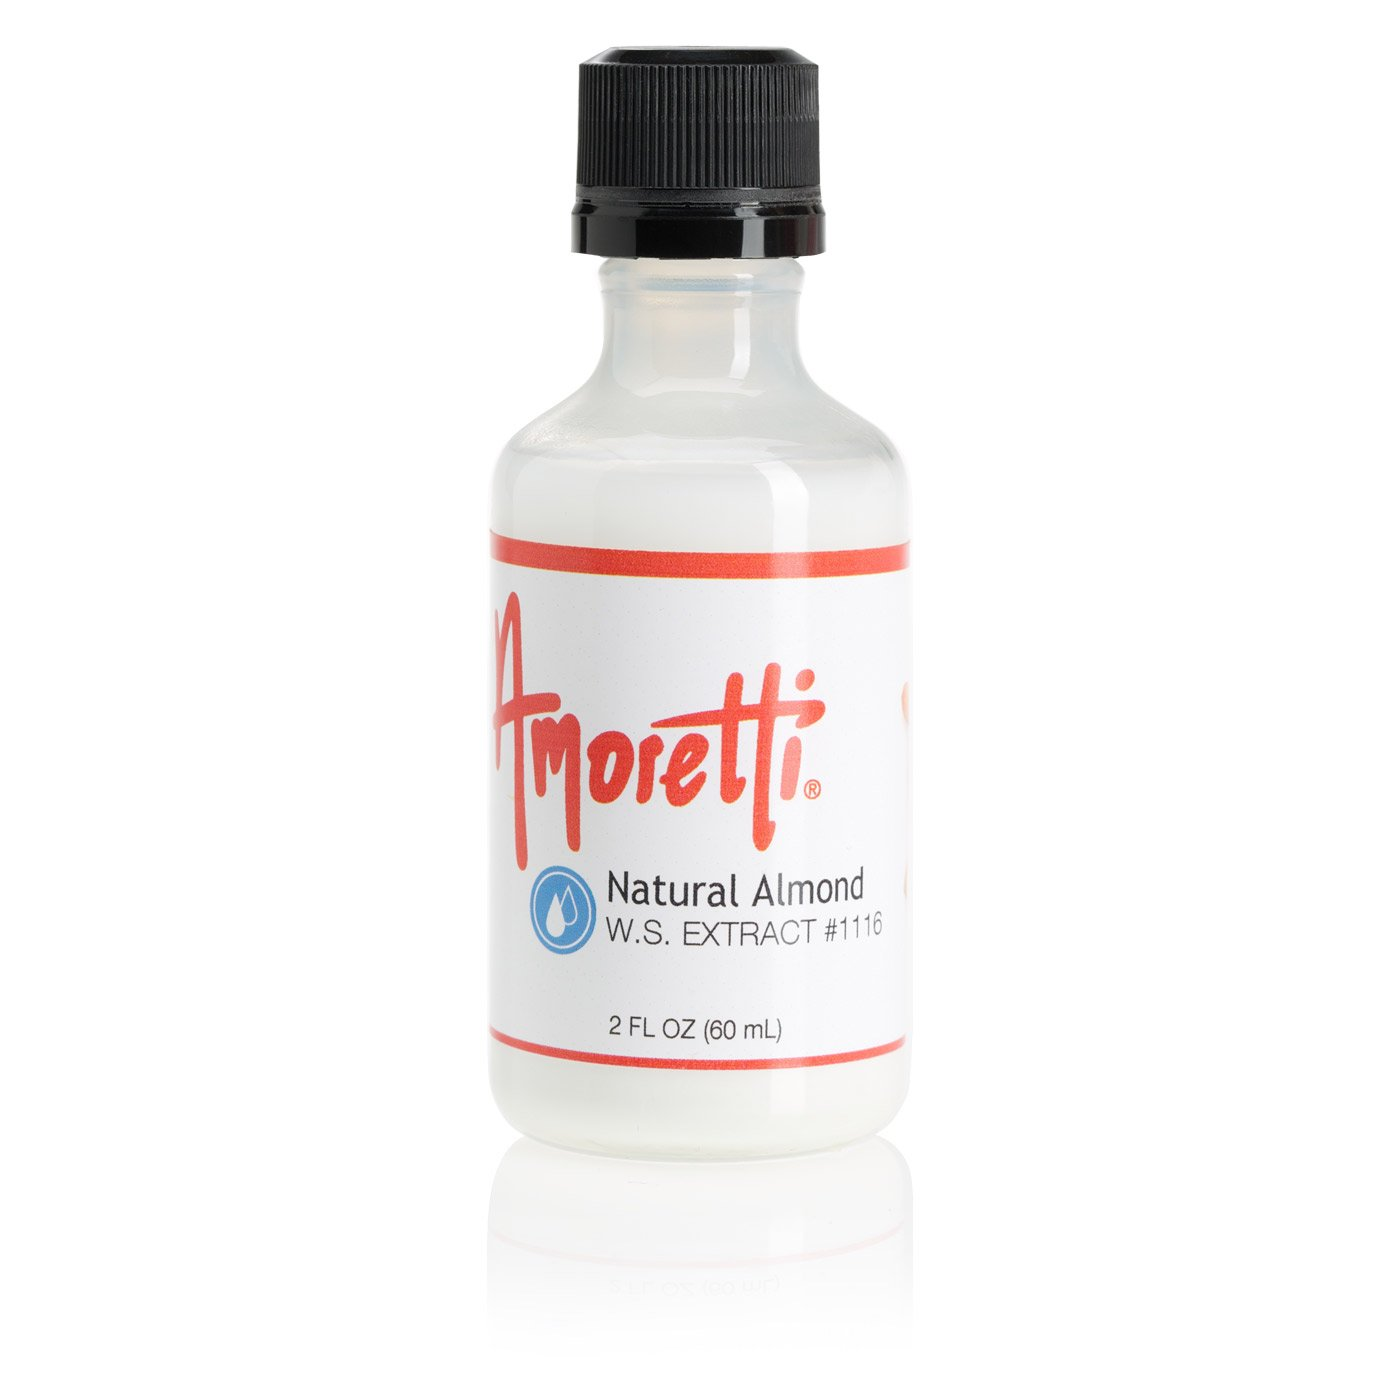 Amoretti Natural Almond Extract W.S.